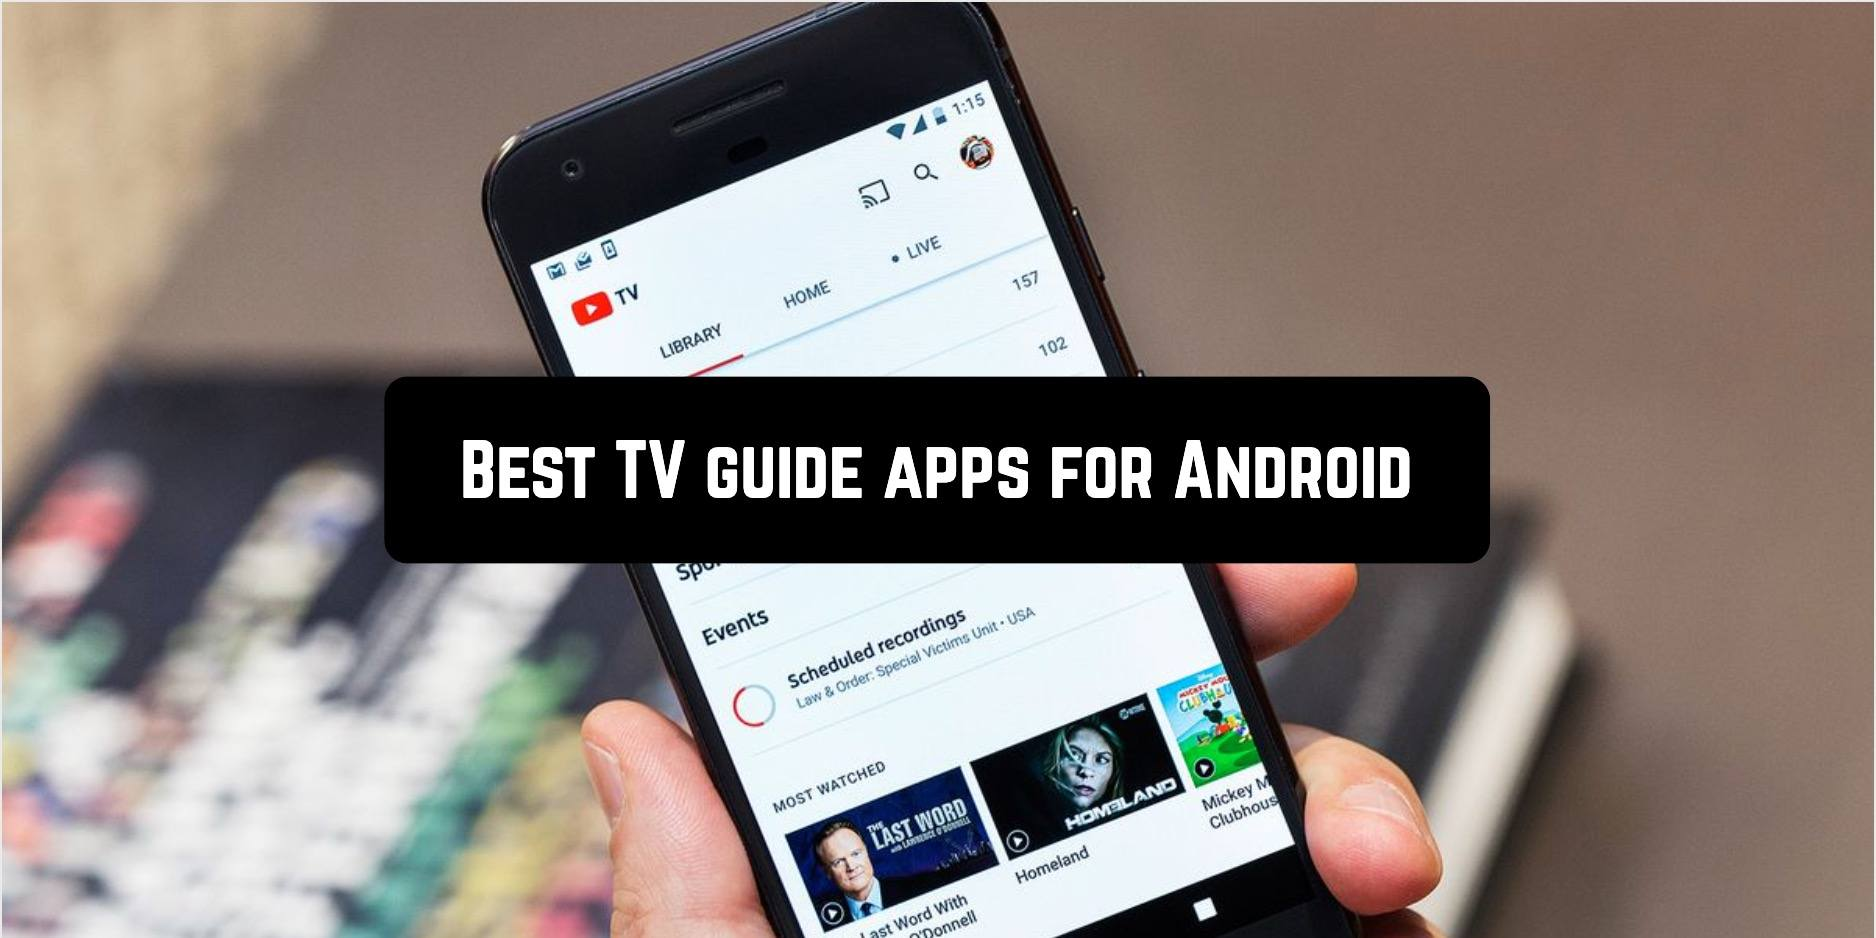 Best TV guide apps for Android